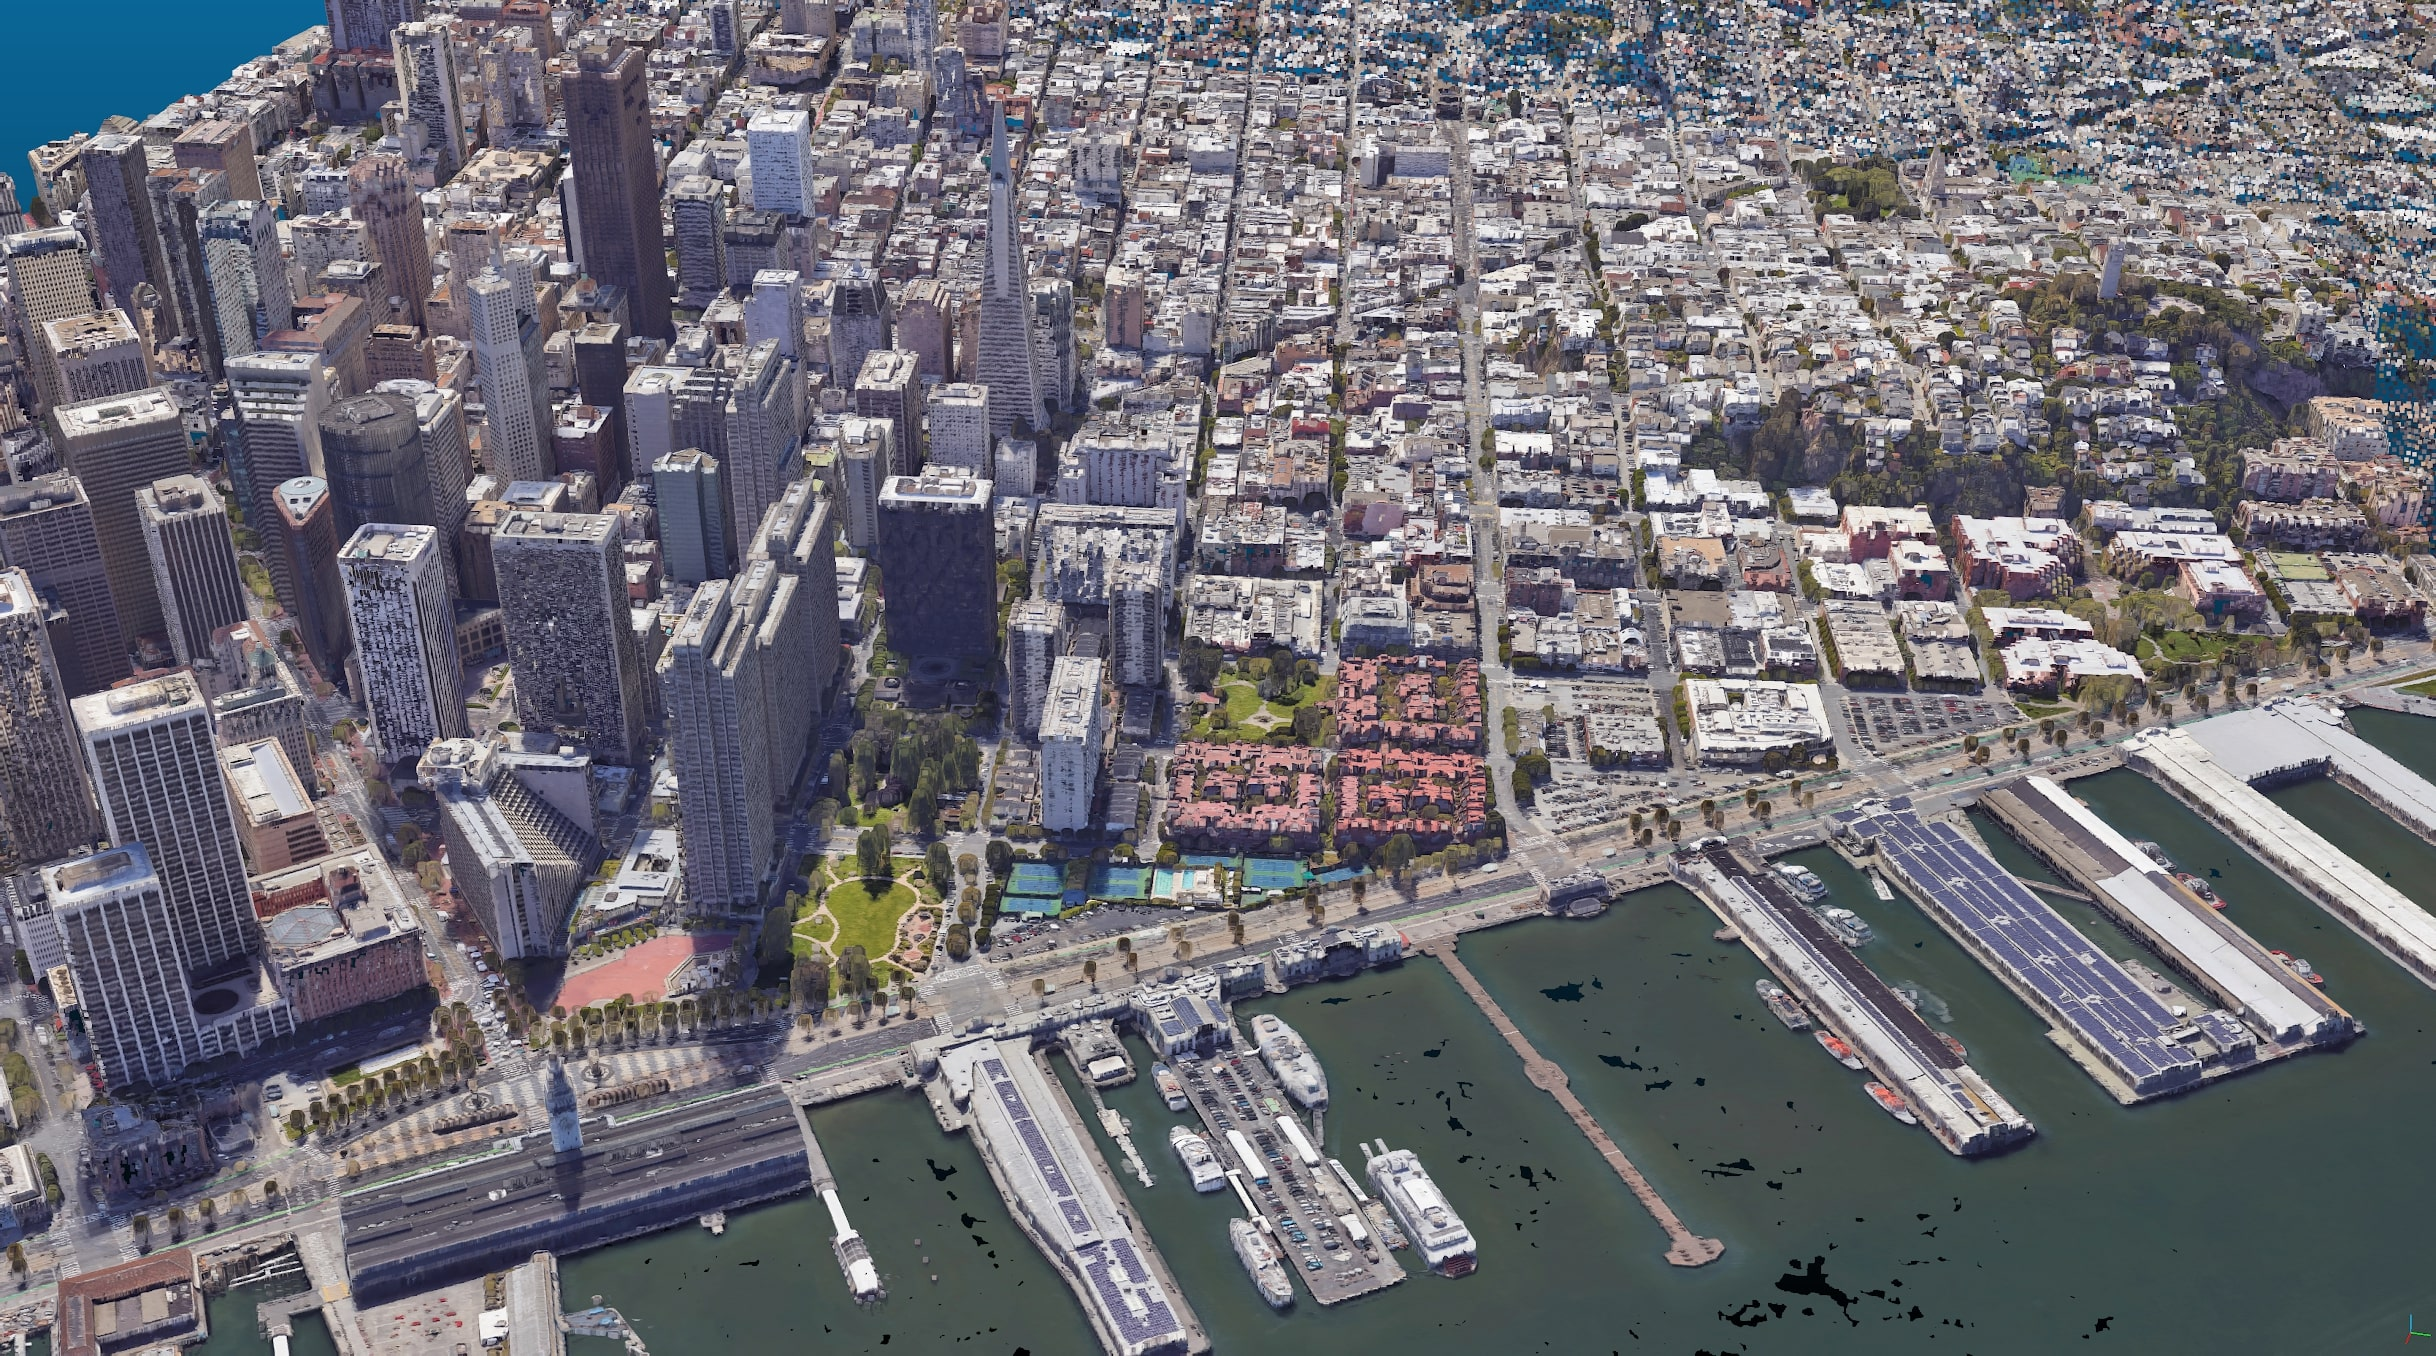 Point Cloud of San Francisco waterfront